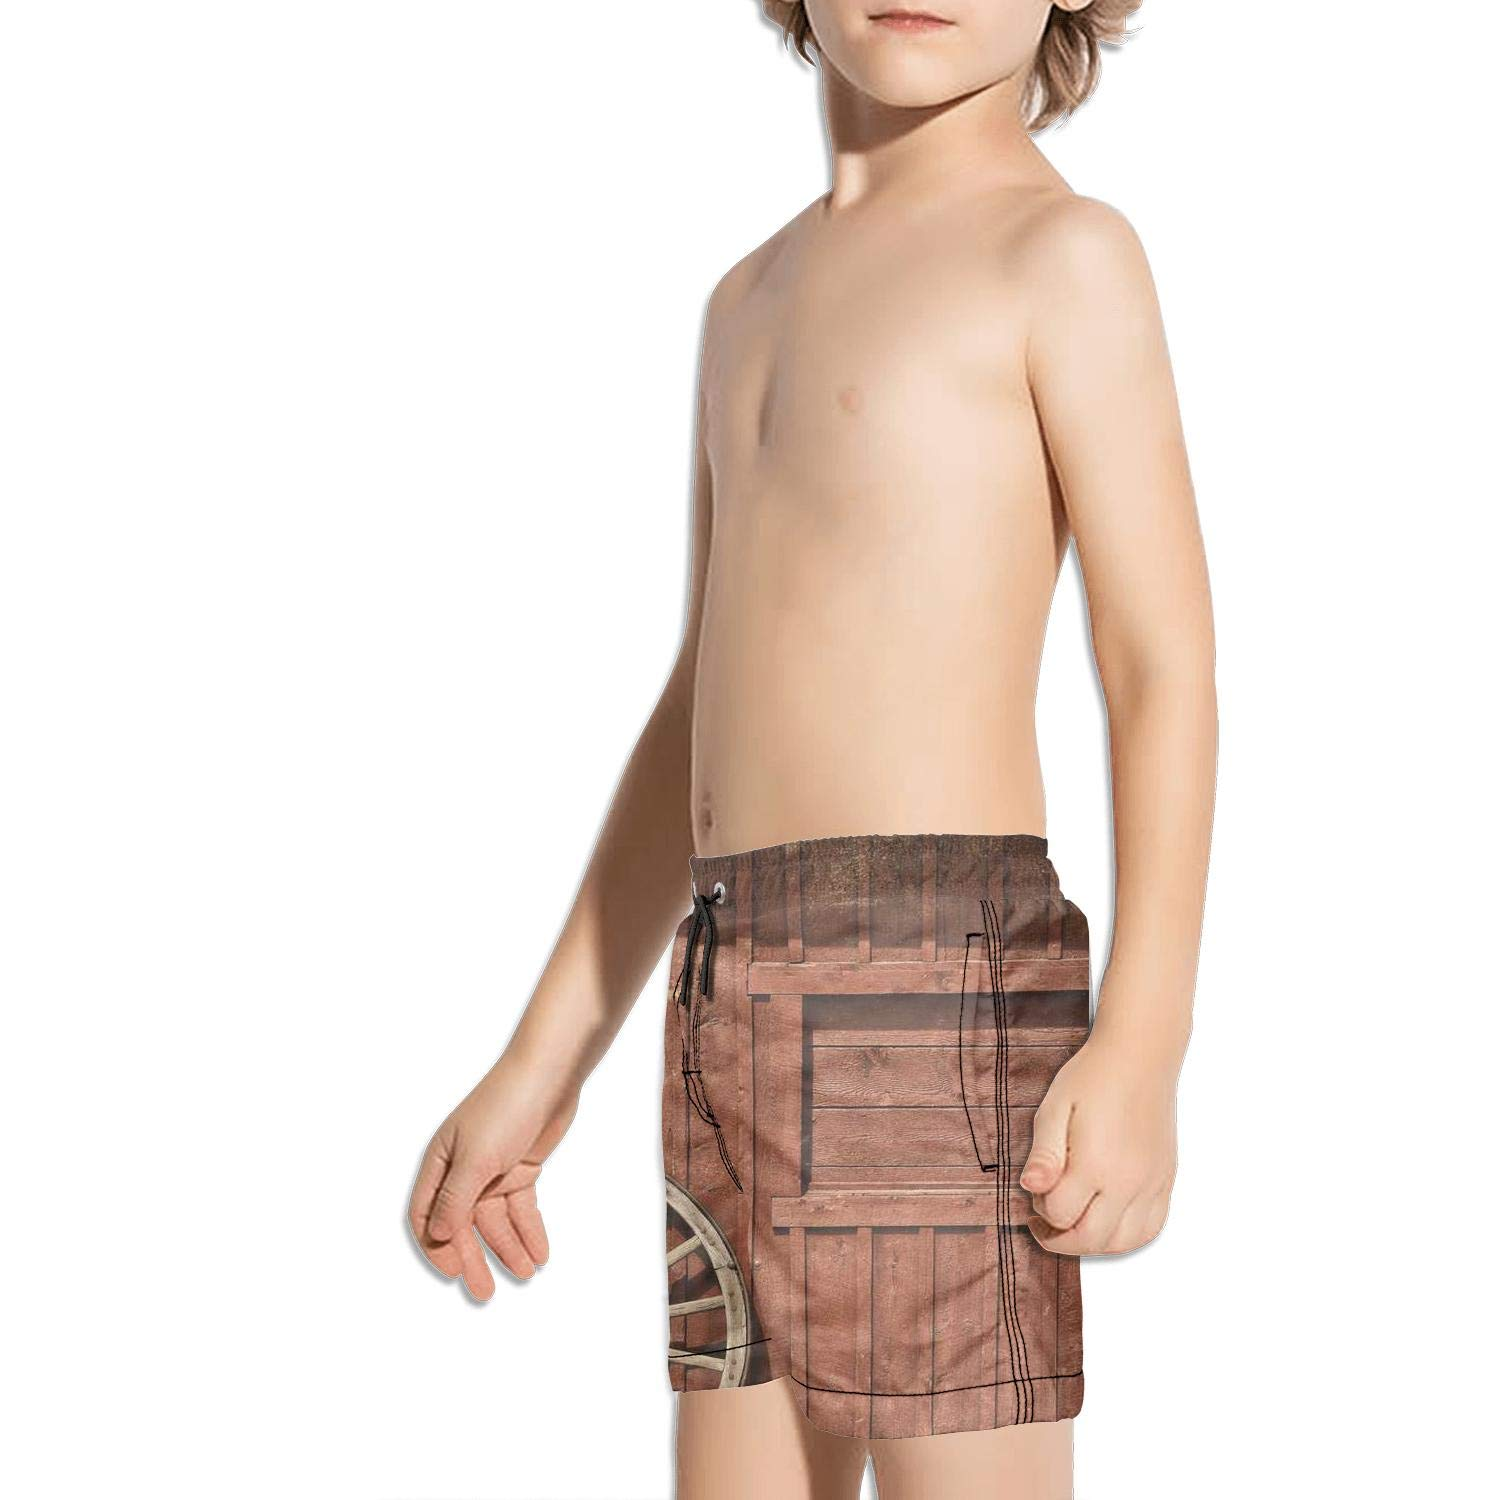 etstk Rustic Wooden barn Farmhouse Rural Kids Quick Dry Swim Trunks for Men